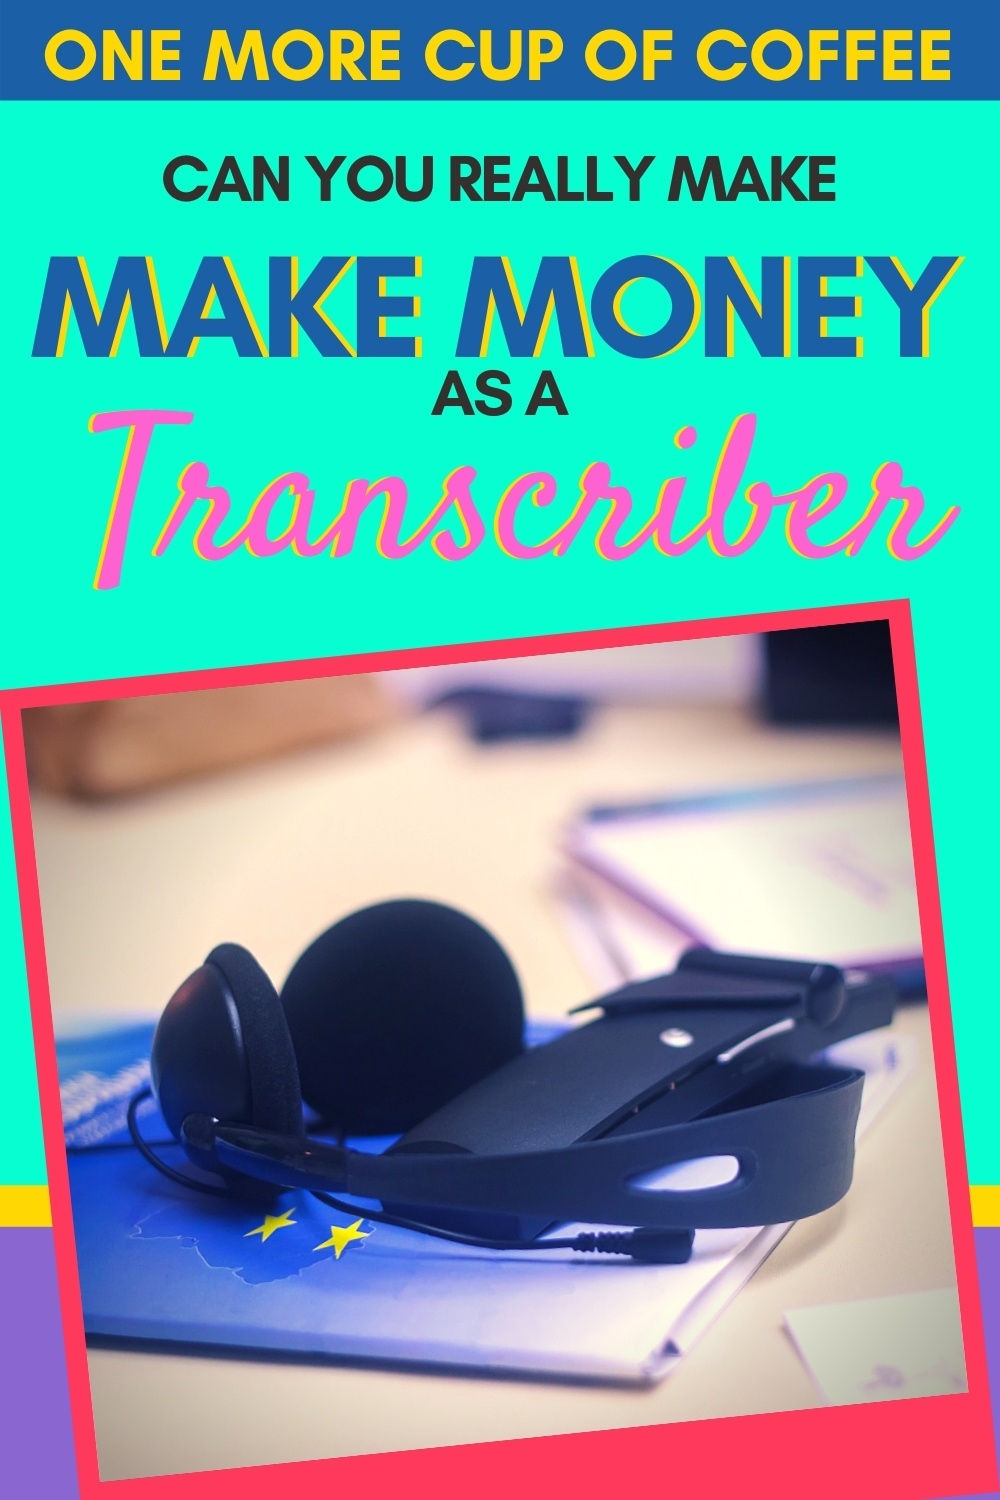 Headphones a notebook representing making money as a transcriber.